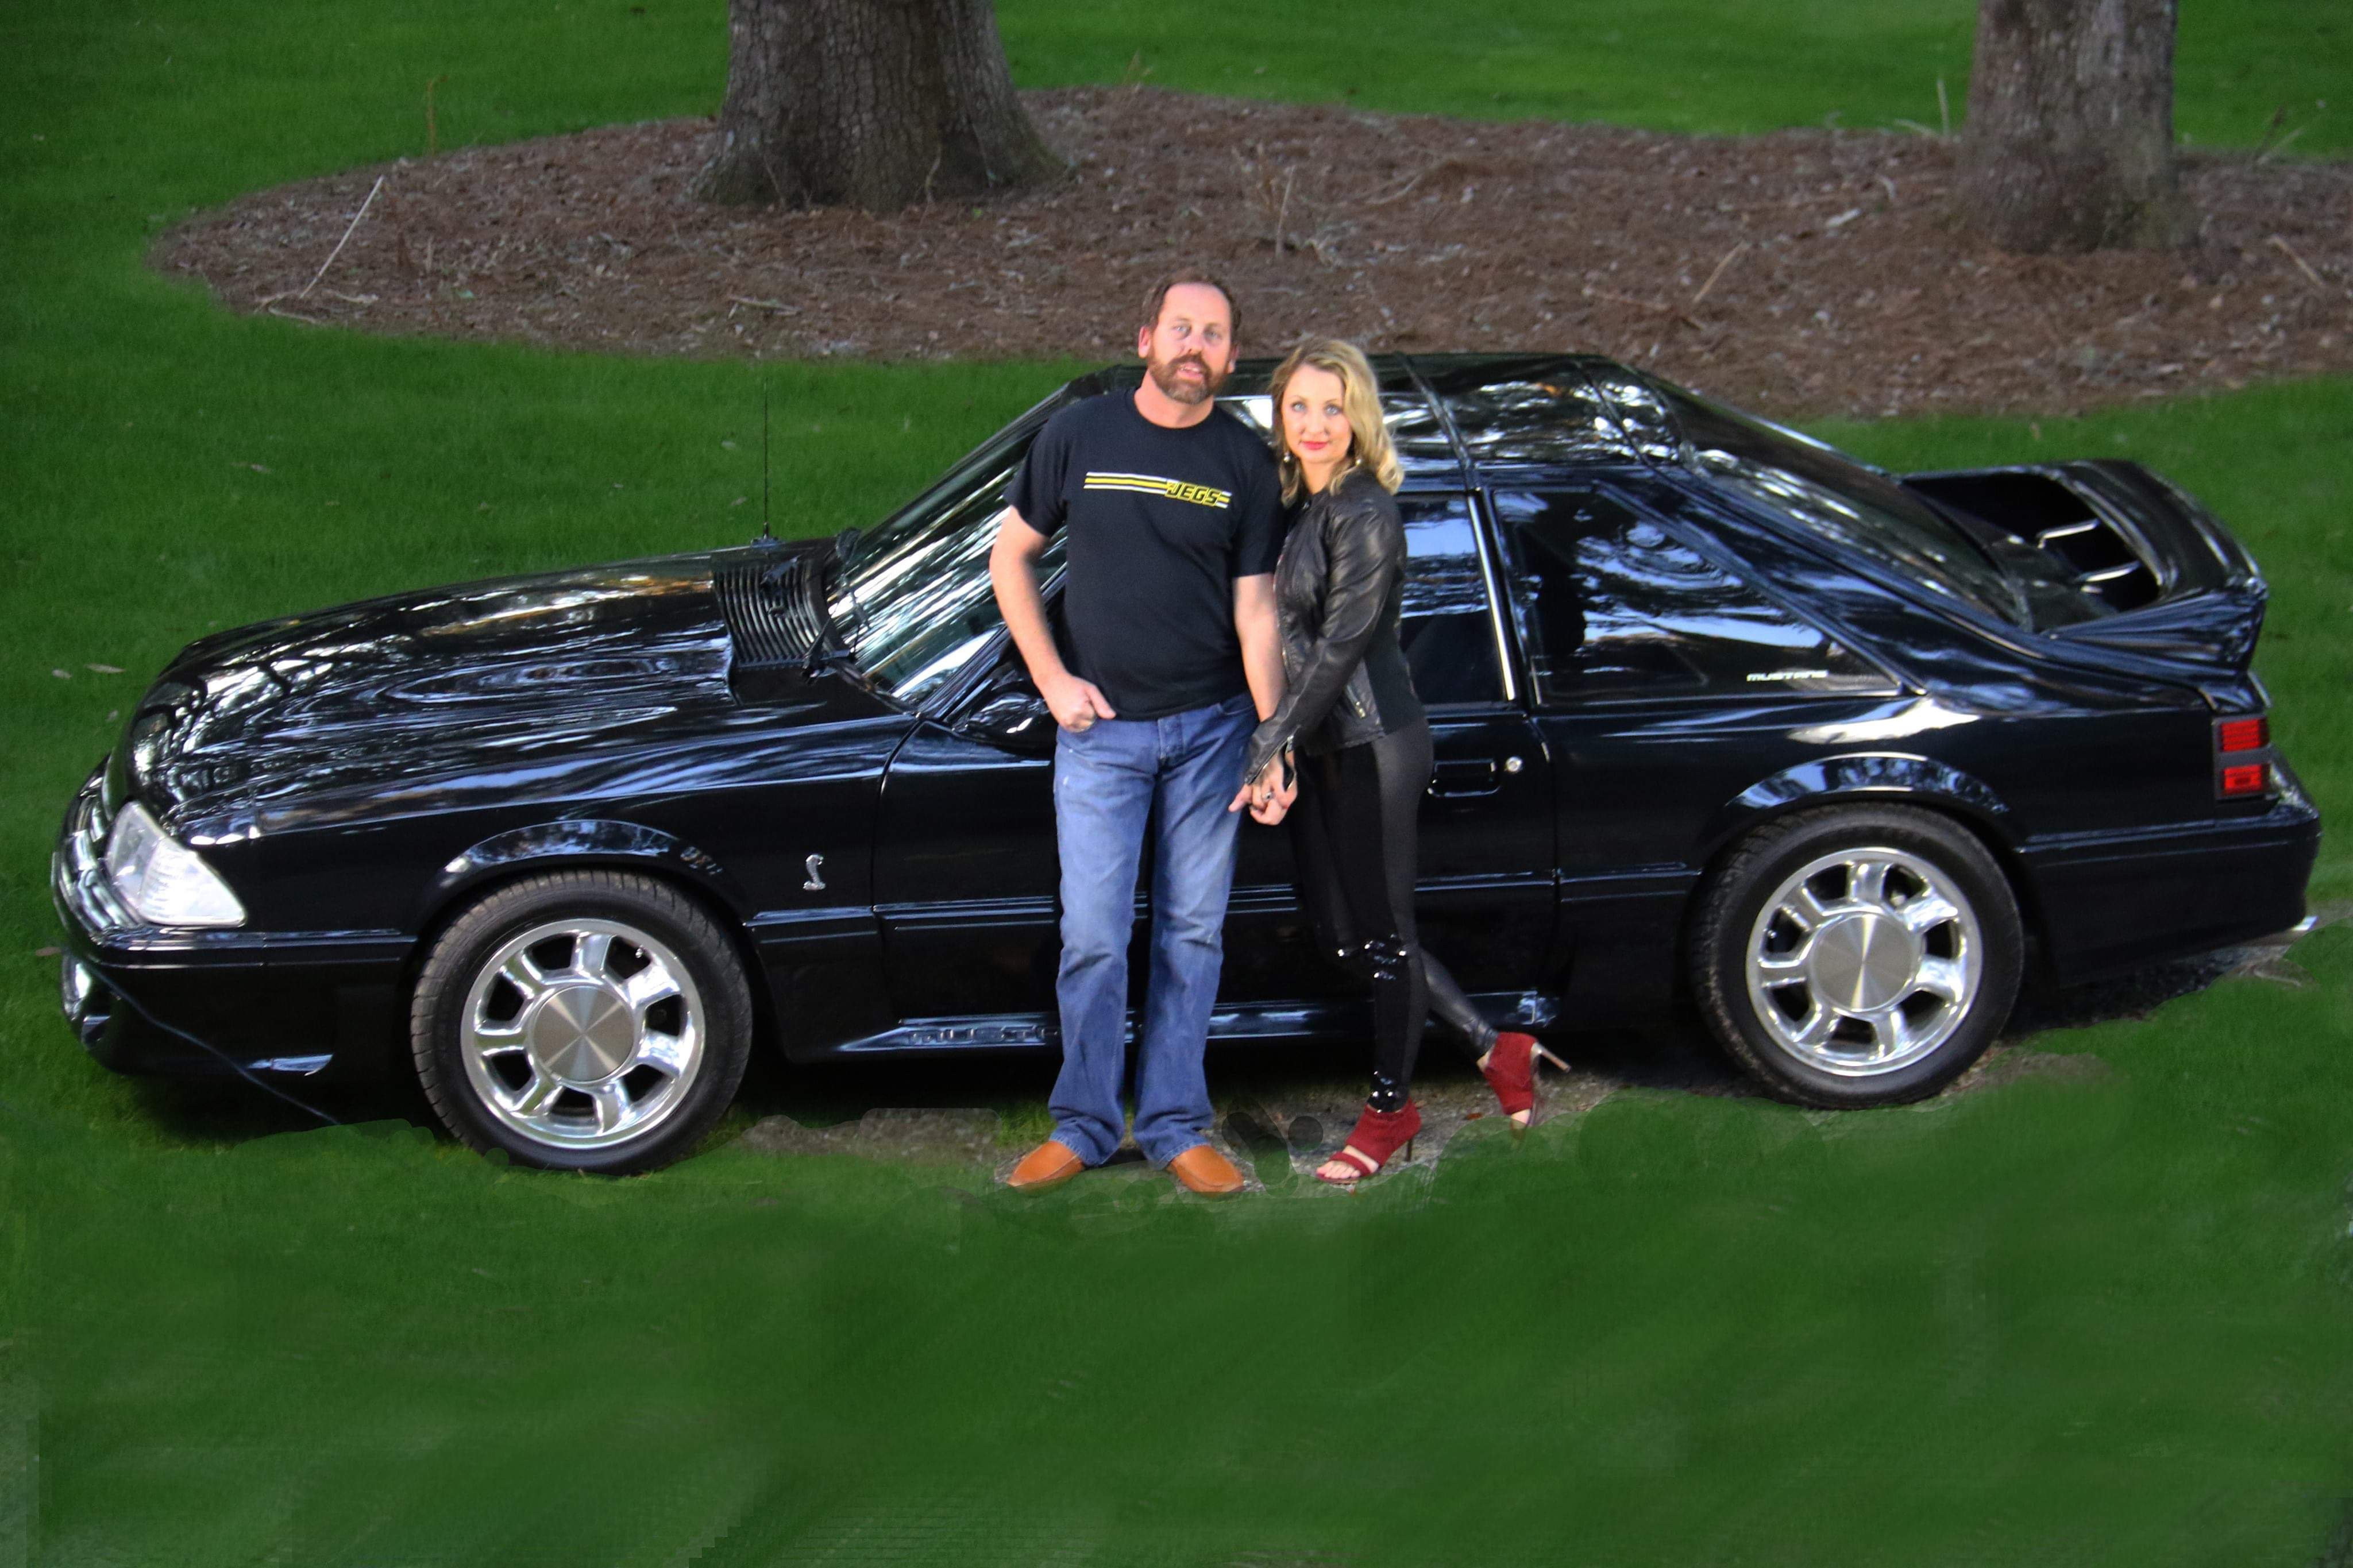 billy akers's 1987 black ford mustang